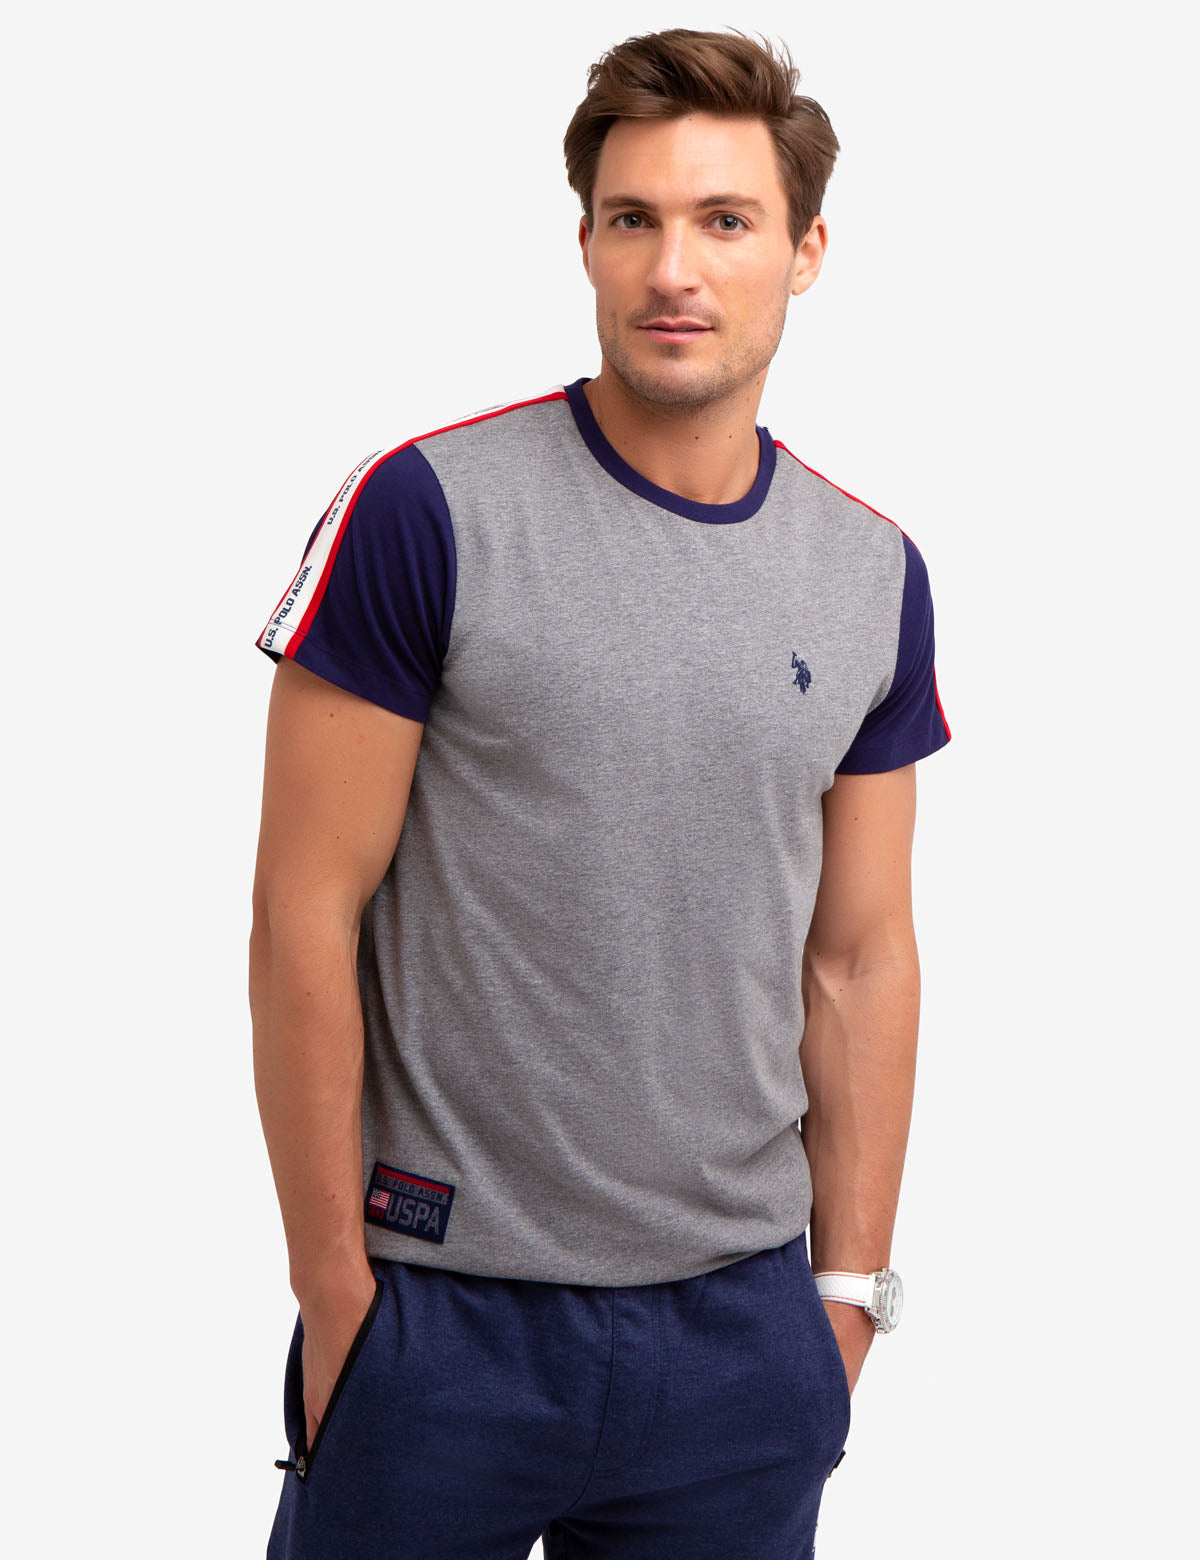 COLORBLOCK TEE-SHIRT WITH U.S. POLO ASSN. TAPING - U.S. Polo Assn.